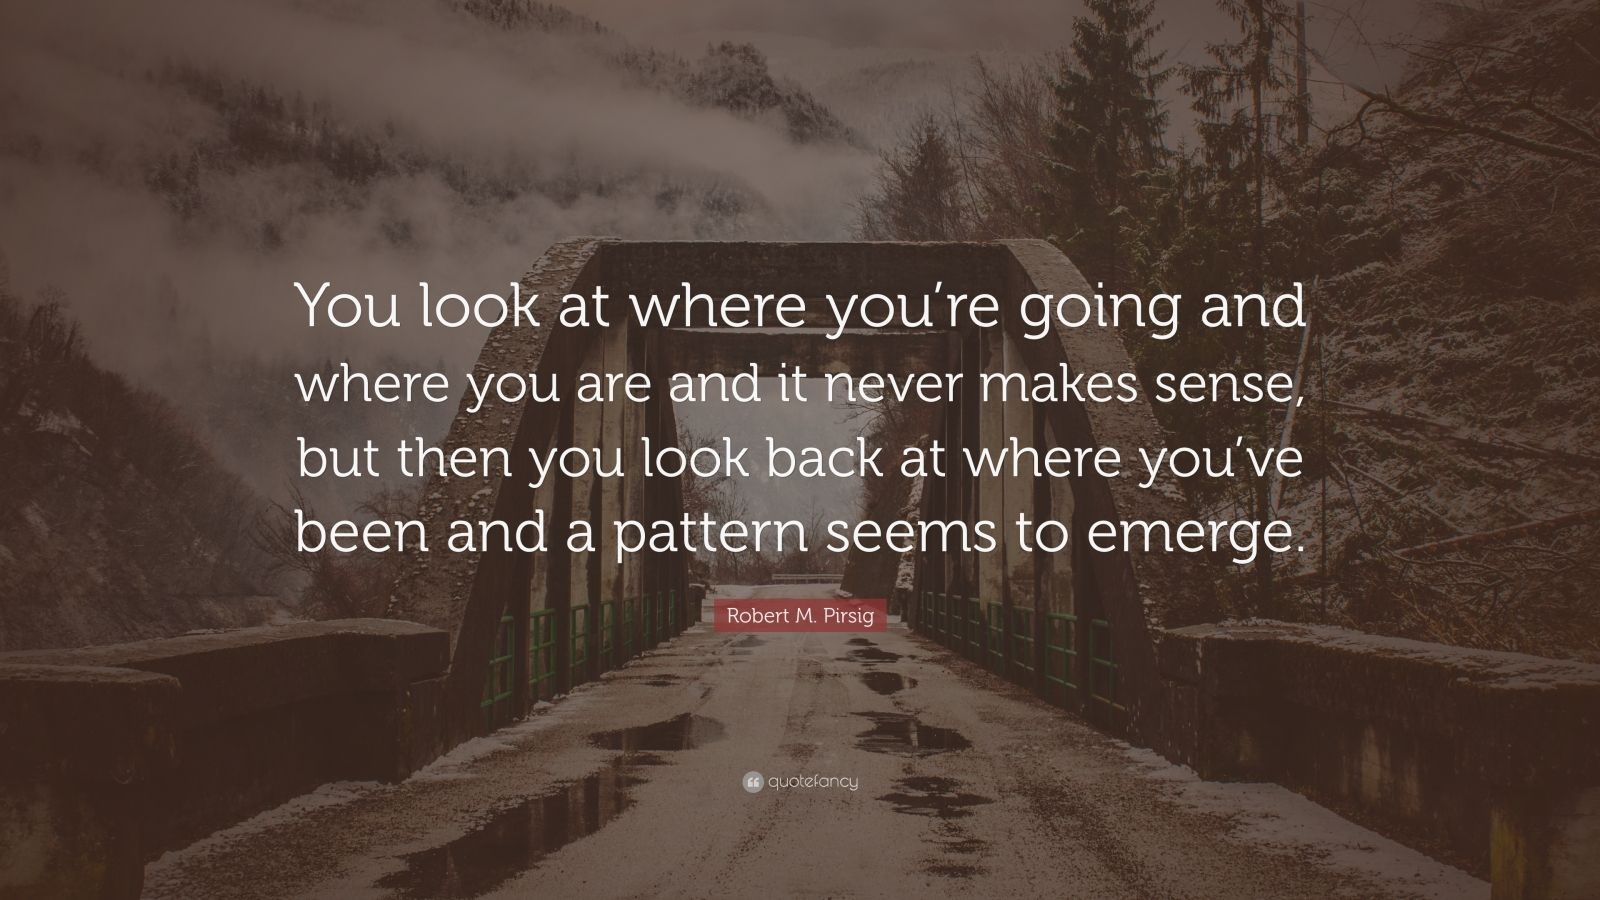 "Robert M. Pirsig Quote: ""You look at where you're going and where you are and it never makes sense, but then you look back at where you've been and a pattern seems to emerge."""